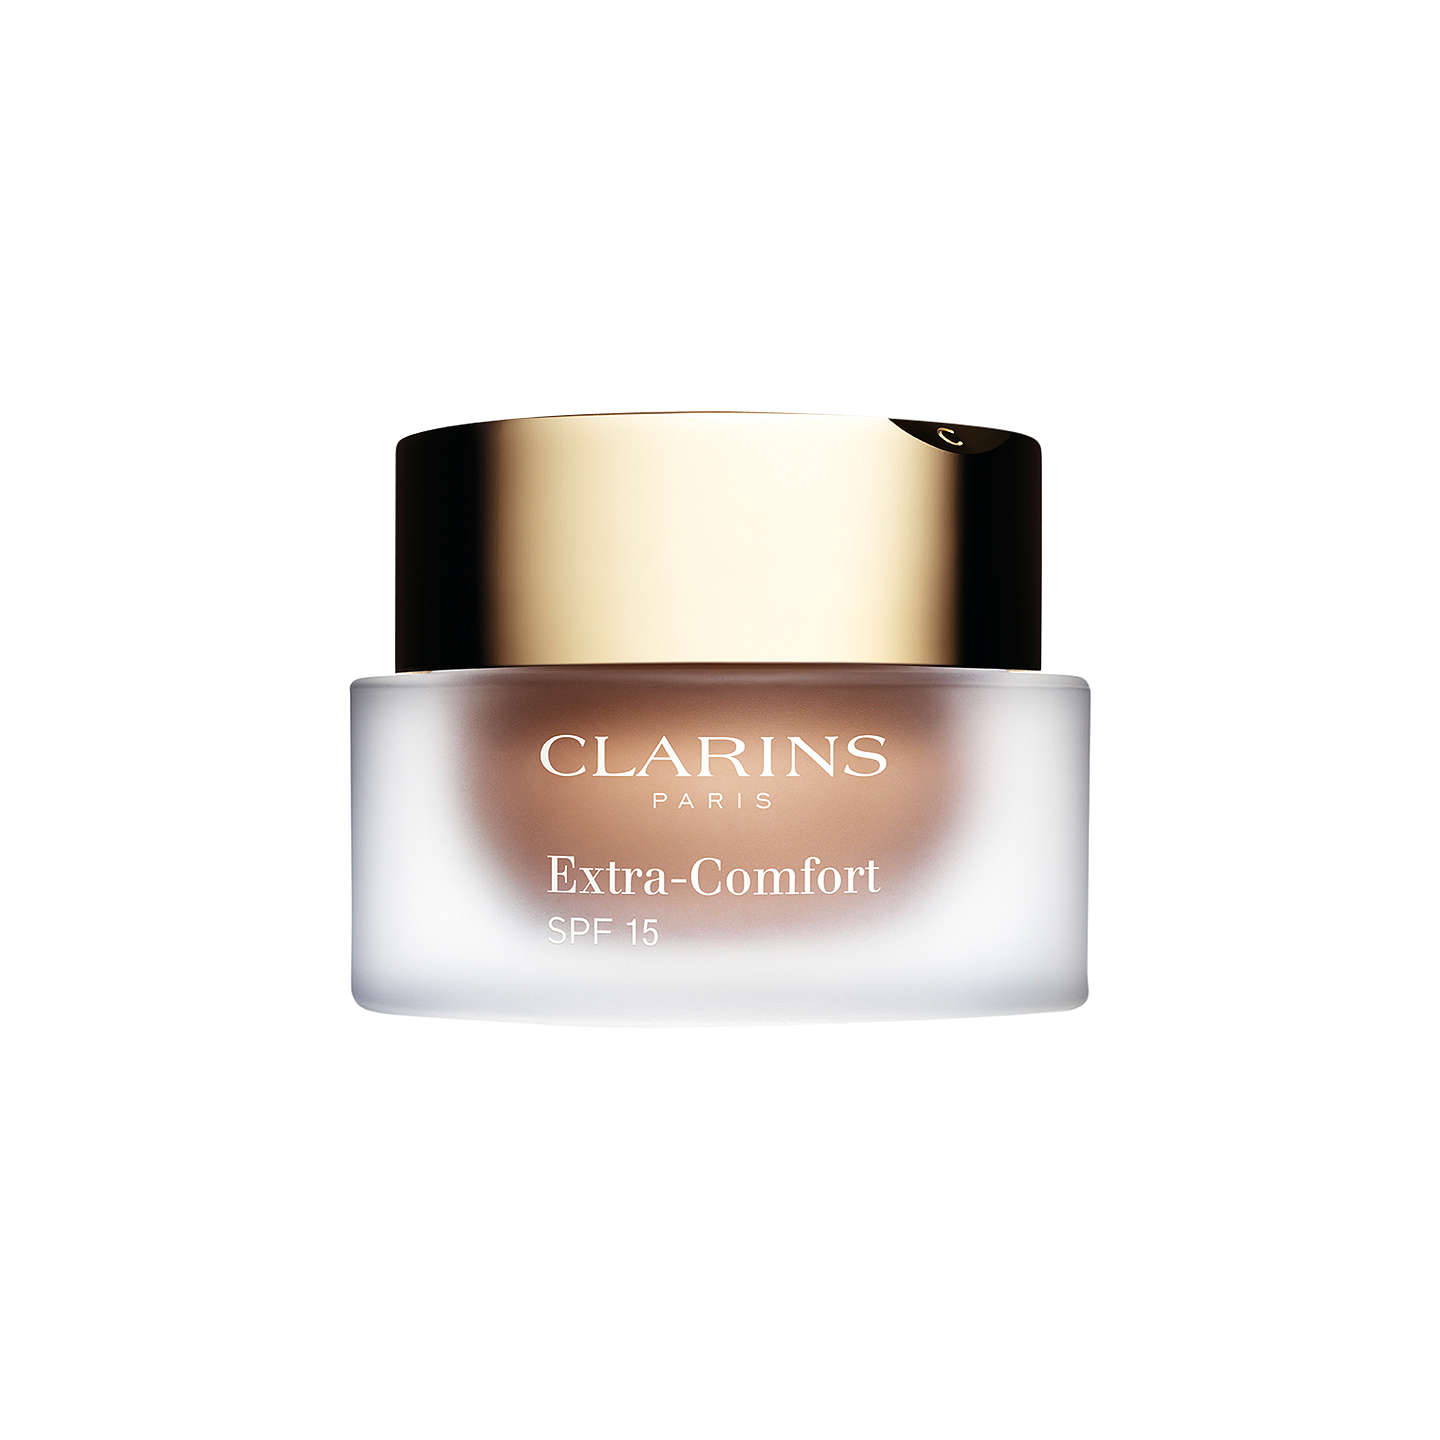 BuyClarins Extra Comfort Foundation, 103 Ivory Online at johnlewis.com